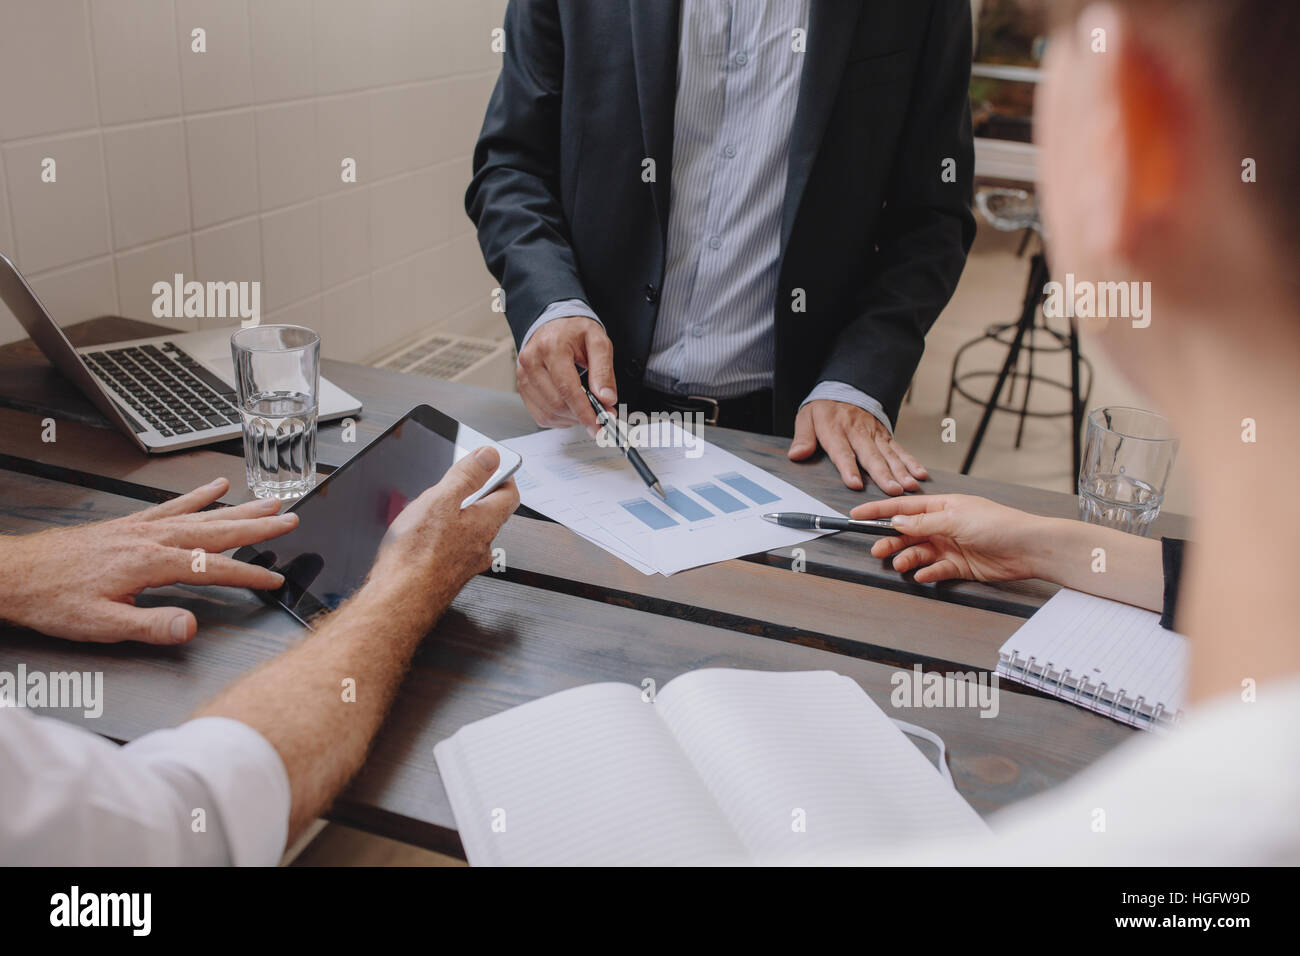 Close up shot of team of professionals meeting with digital tablet and charts. Business people discussing financial - Stock Image